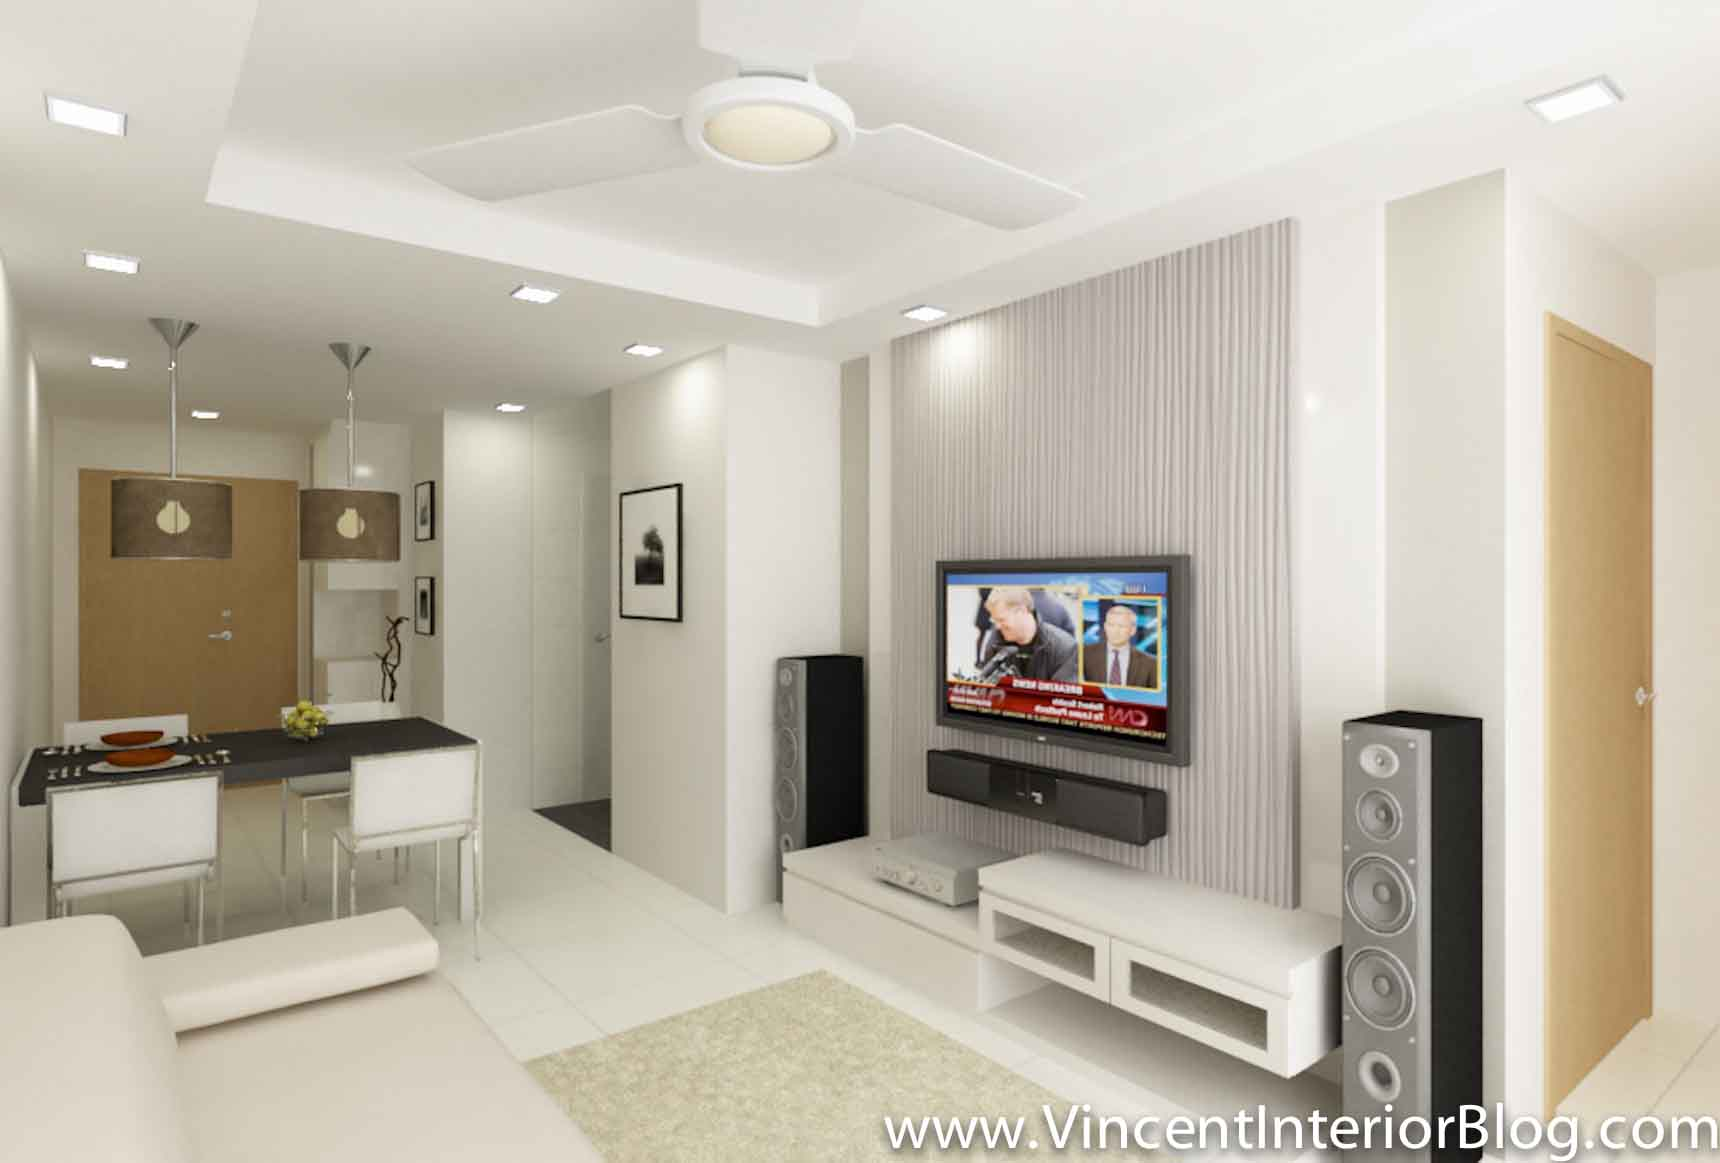 Bto 3 room hdb renovation by interior designer ben ng for Hdb 5 room interior design ideas